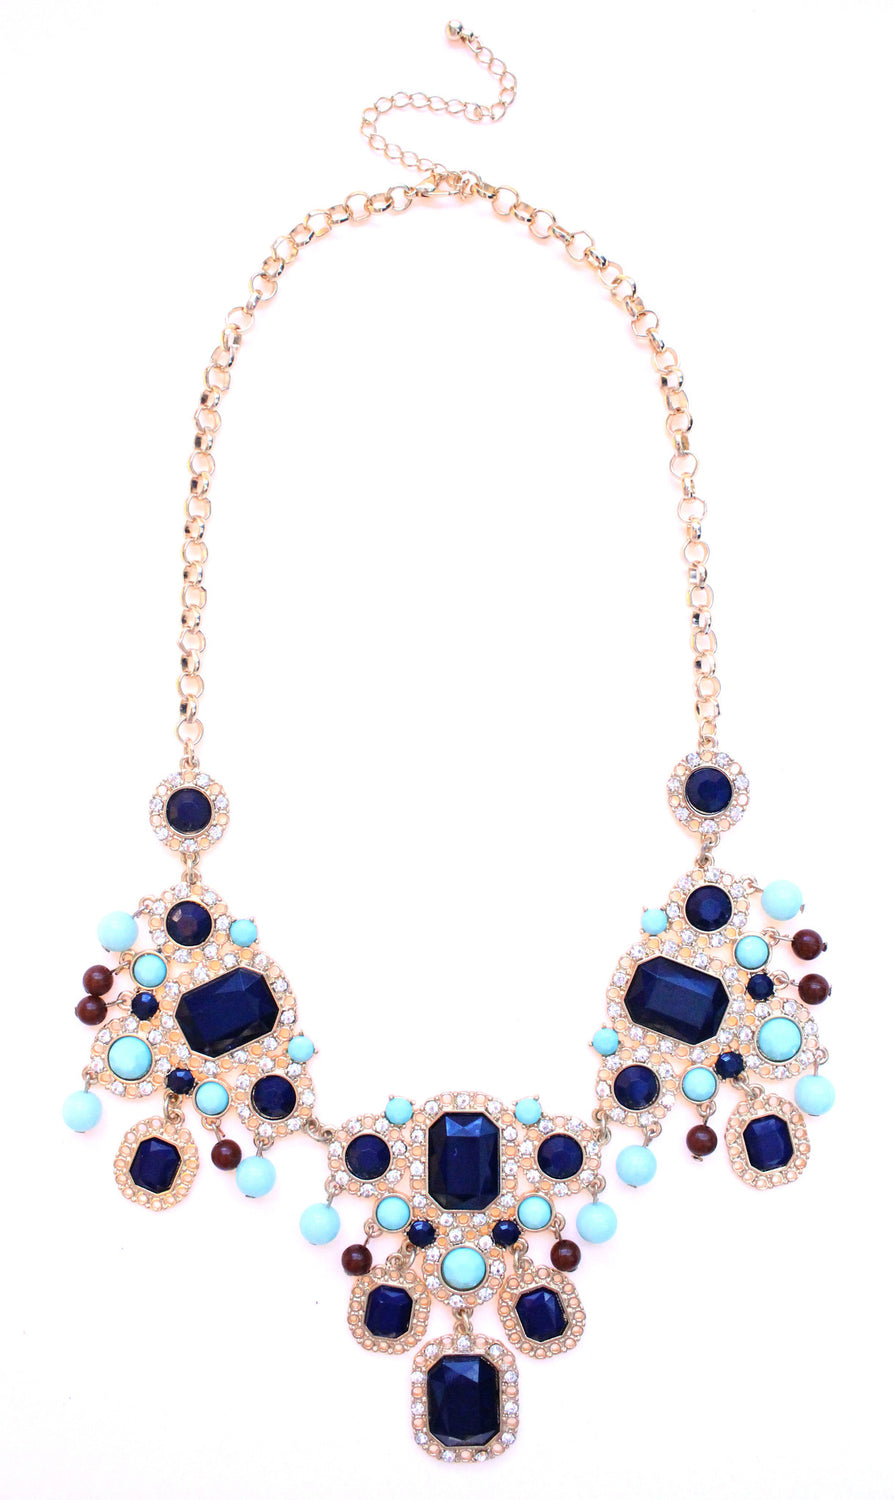 Vintage Inspired Beaded Jeweled Statement Necklace